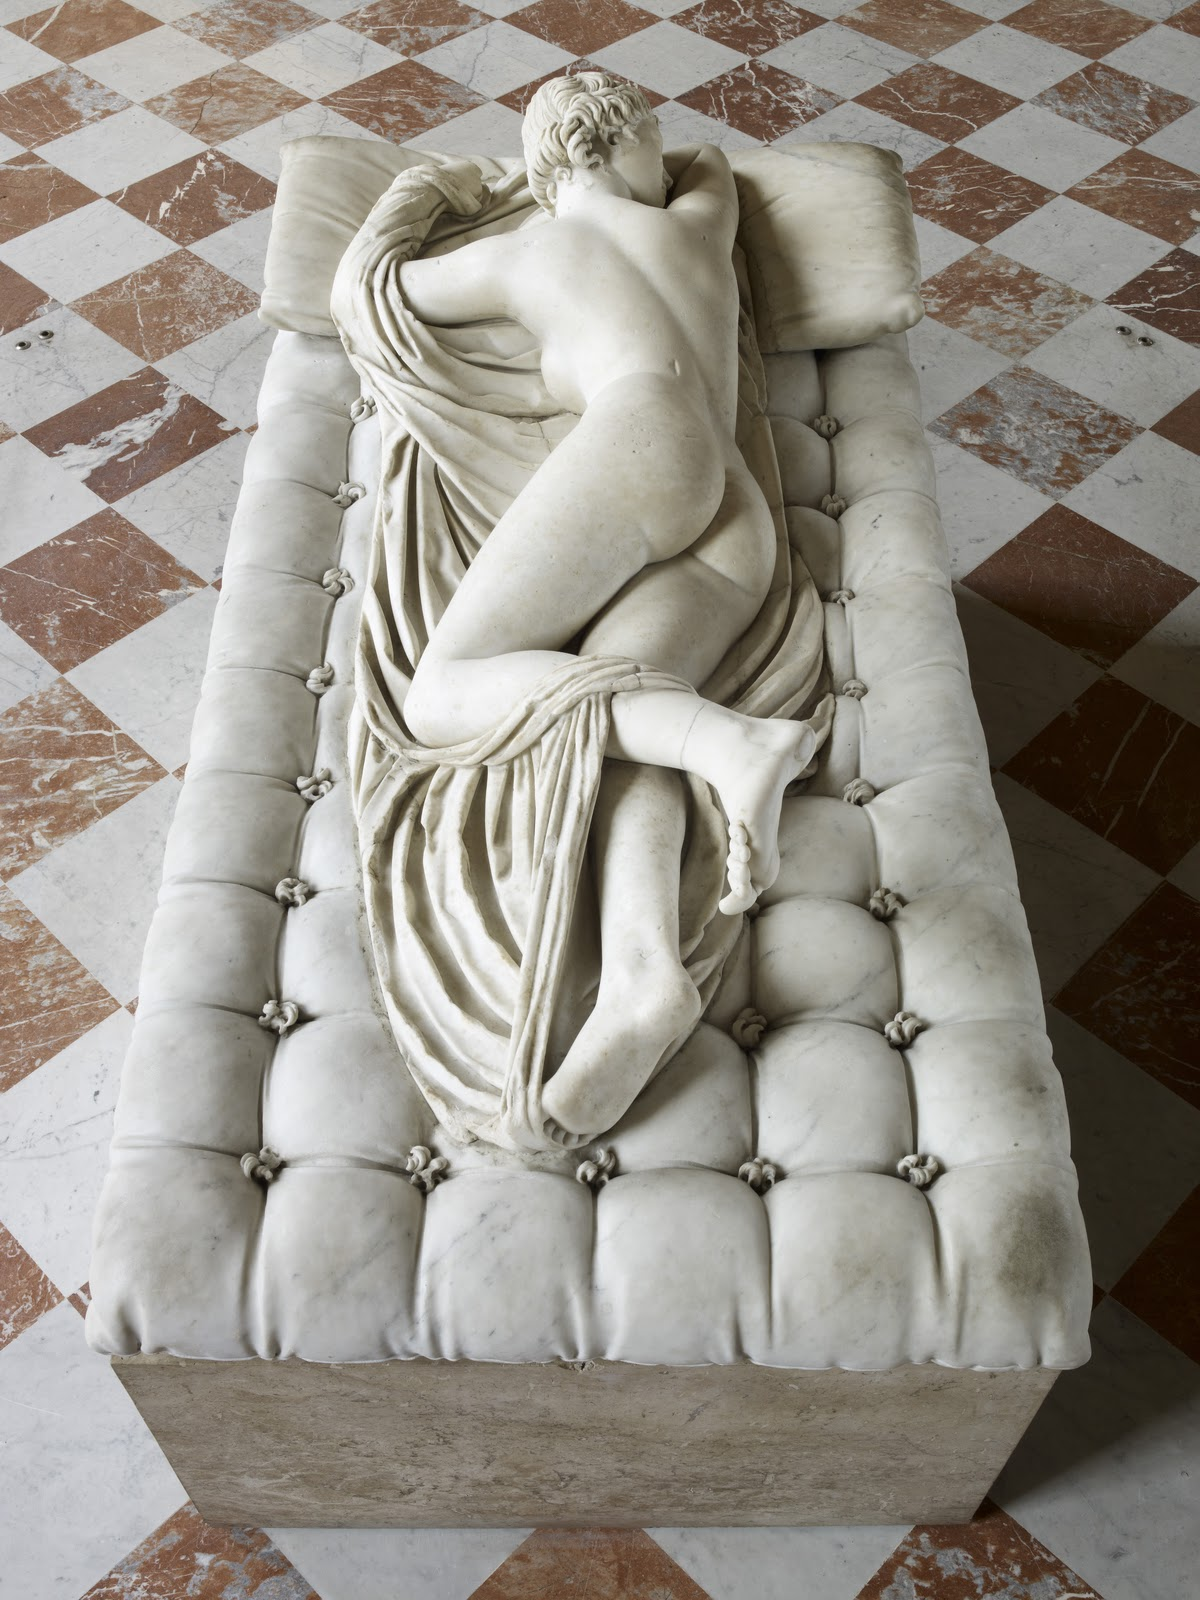 The Sleeping Hermaphrodite - Borghese Gallery (Rome)